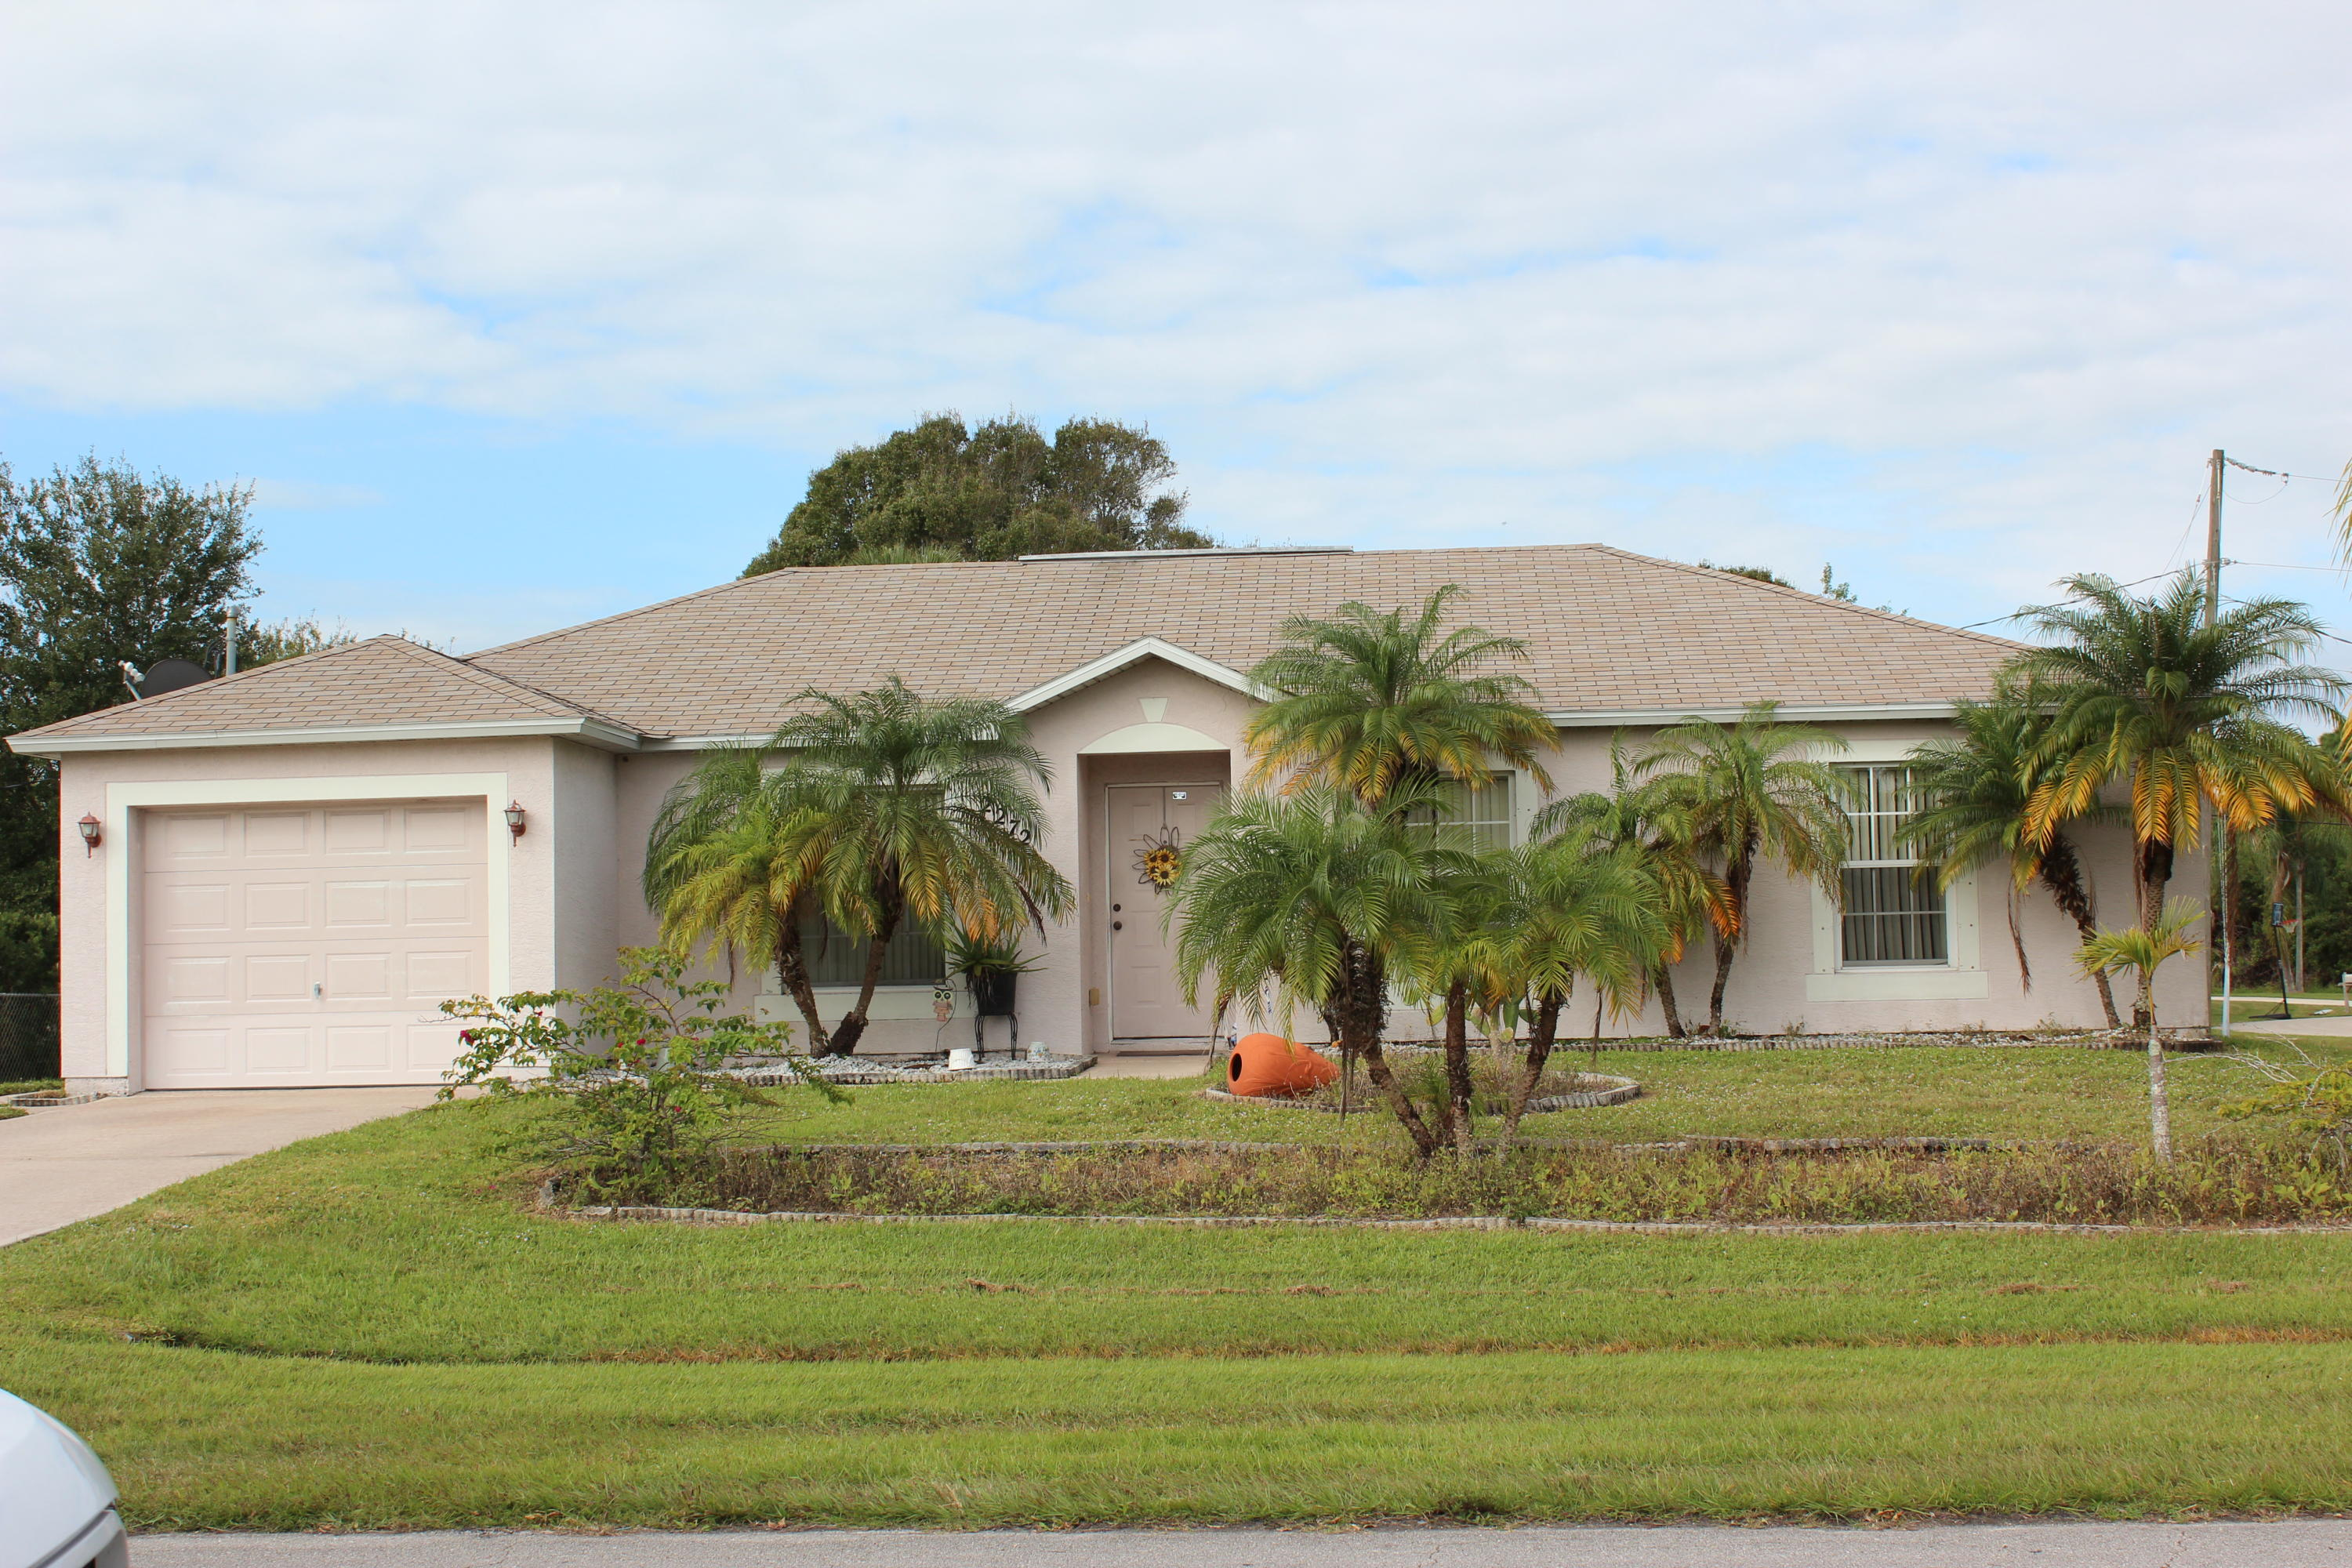 Home for sale in port st lucie section 30 Port Saint Lucie Florida